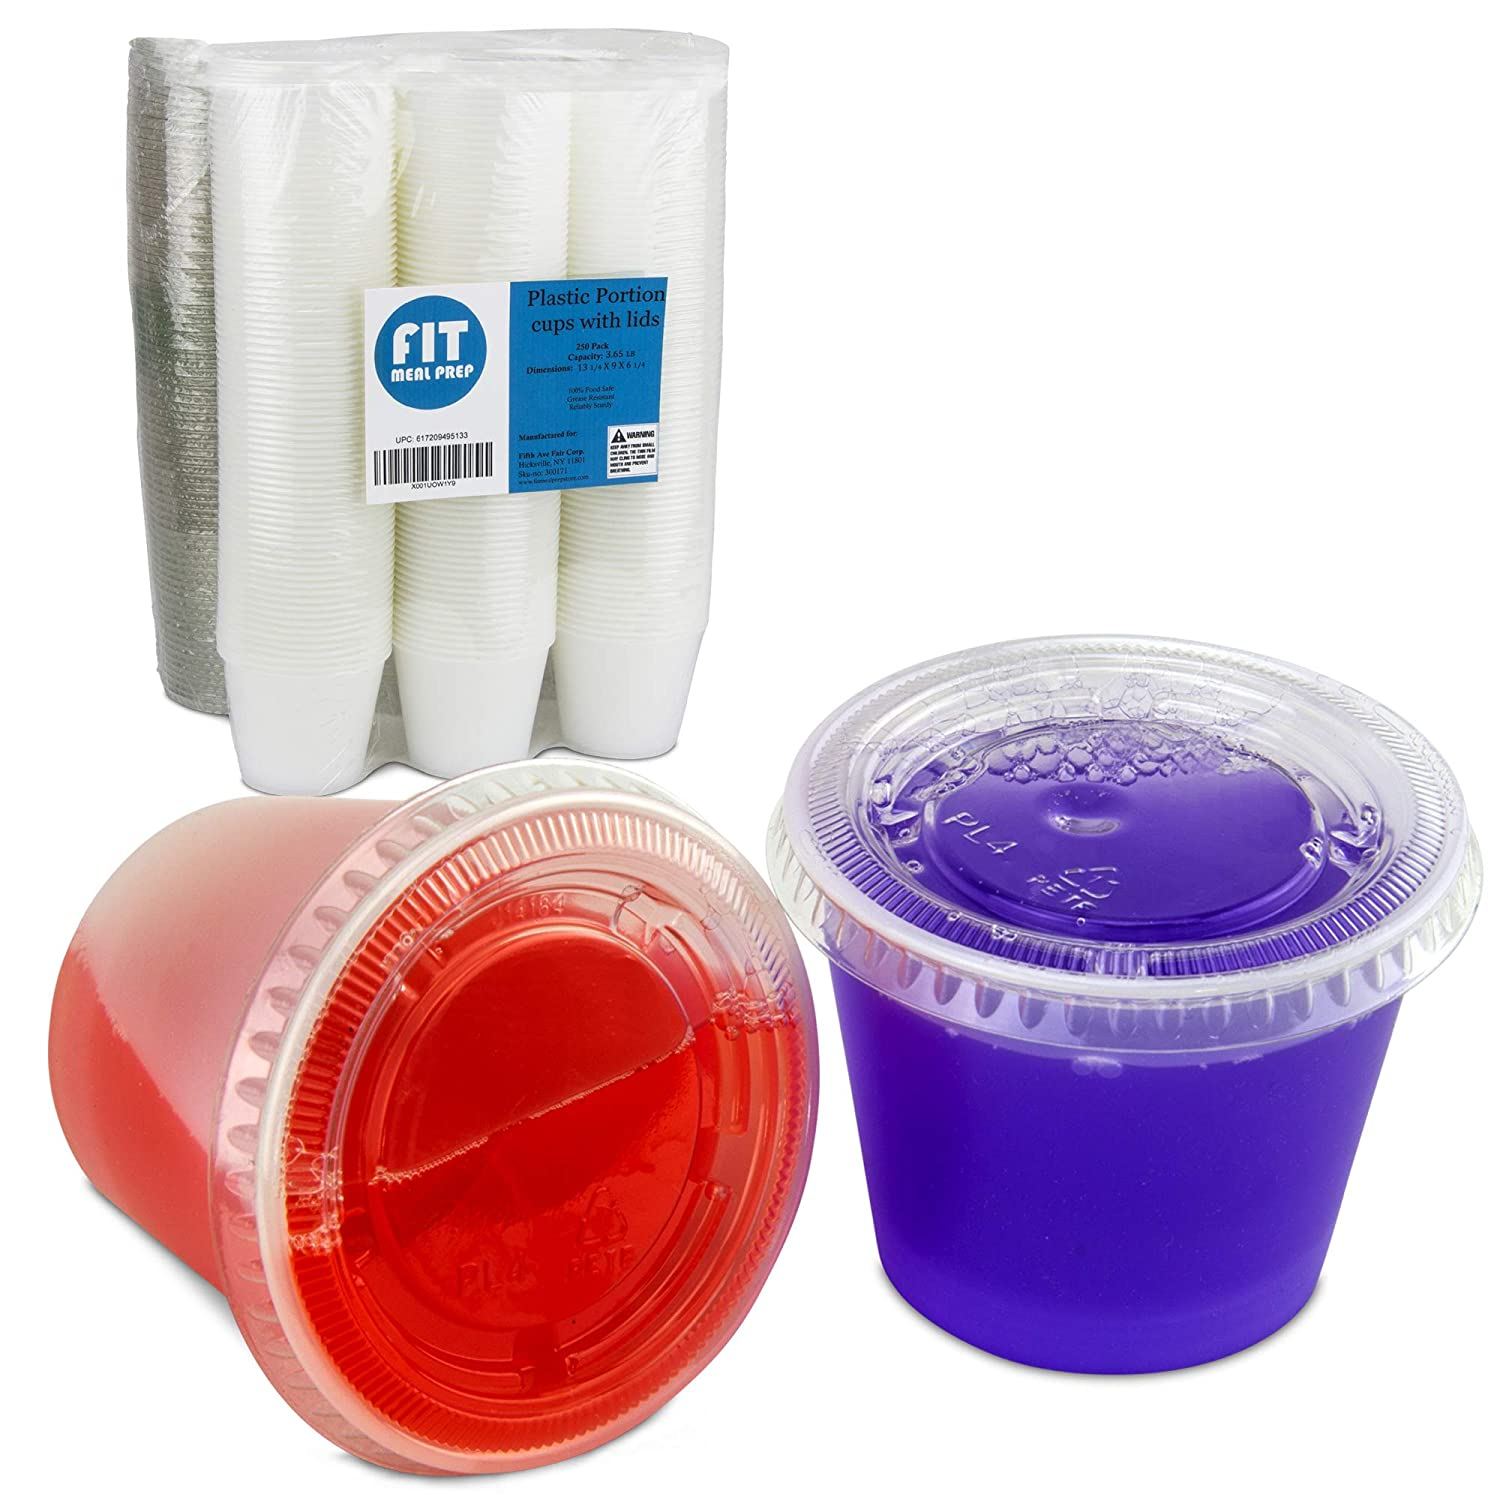 e31512d804d Amazon.com: [250 Pack] 5.5 Ounce BPA-Free Plastic Portion Cup with ...